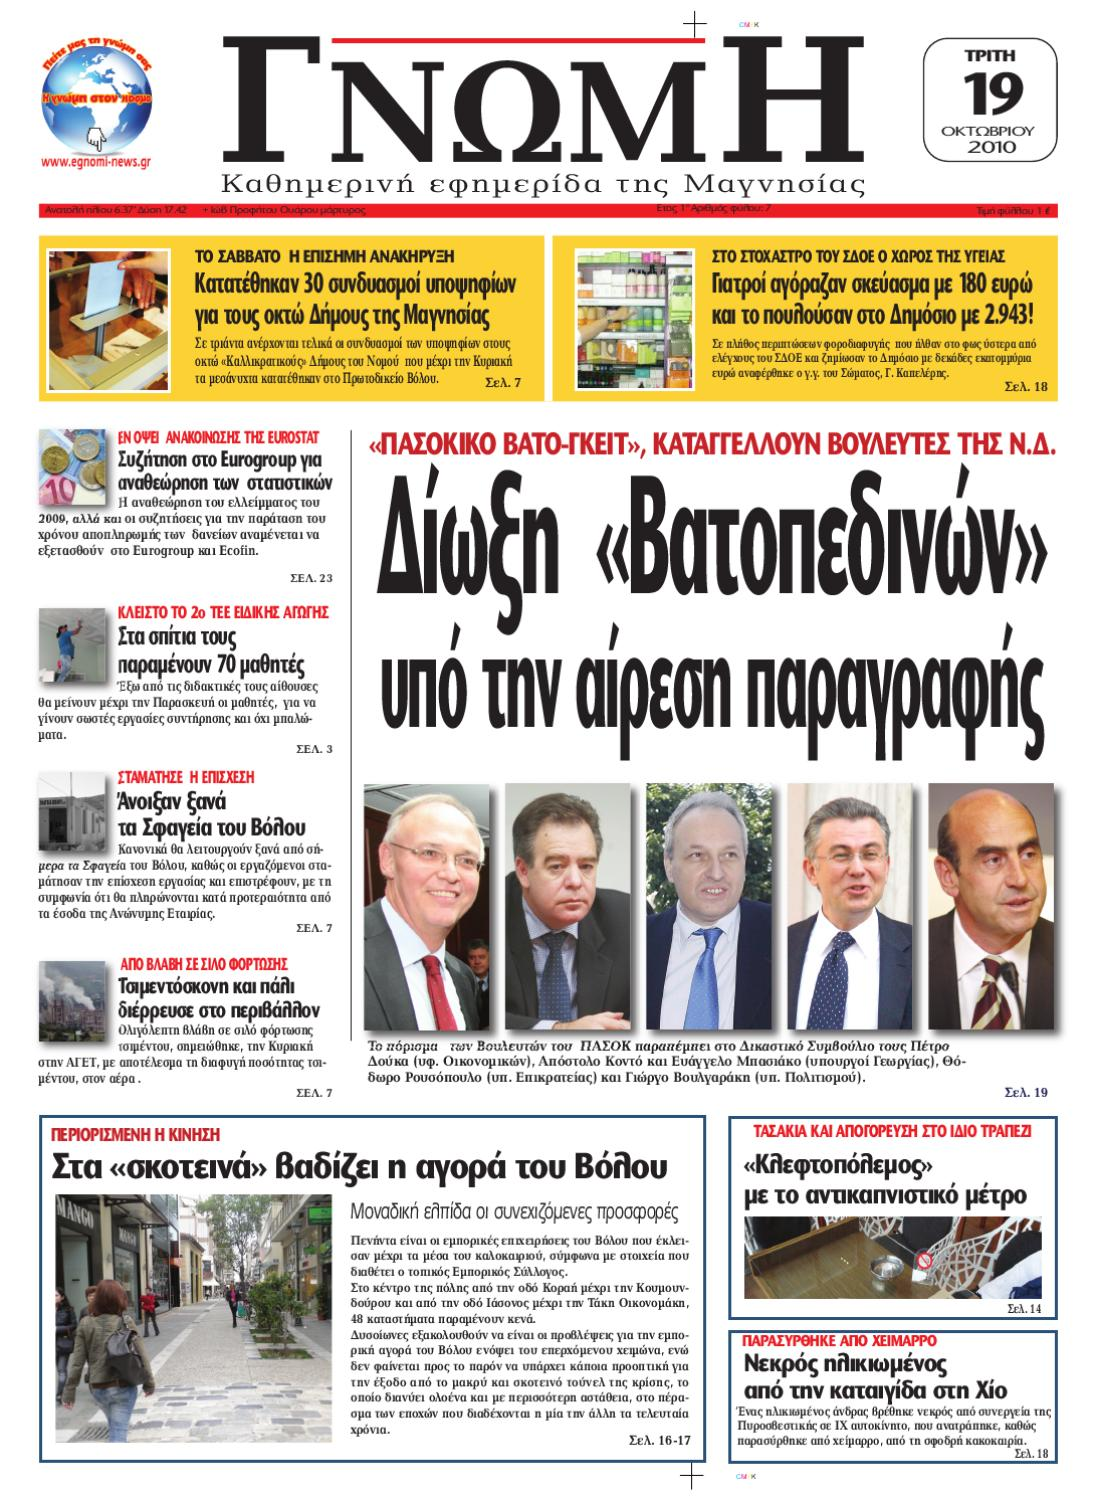 ΕΦΗΜΕΡΙΔΑ ΓΝΩΜΗ by gnomi newspaper - issuu 51fe3e7c010